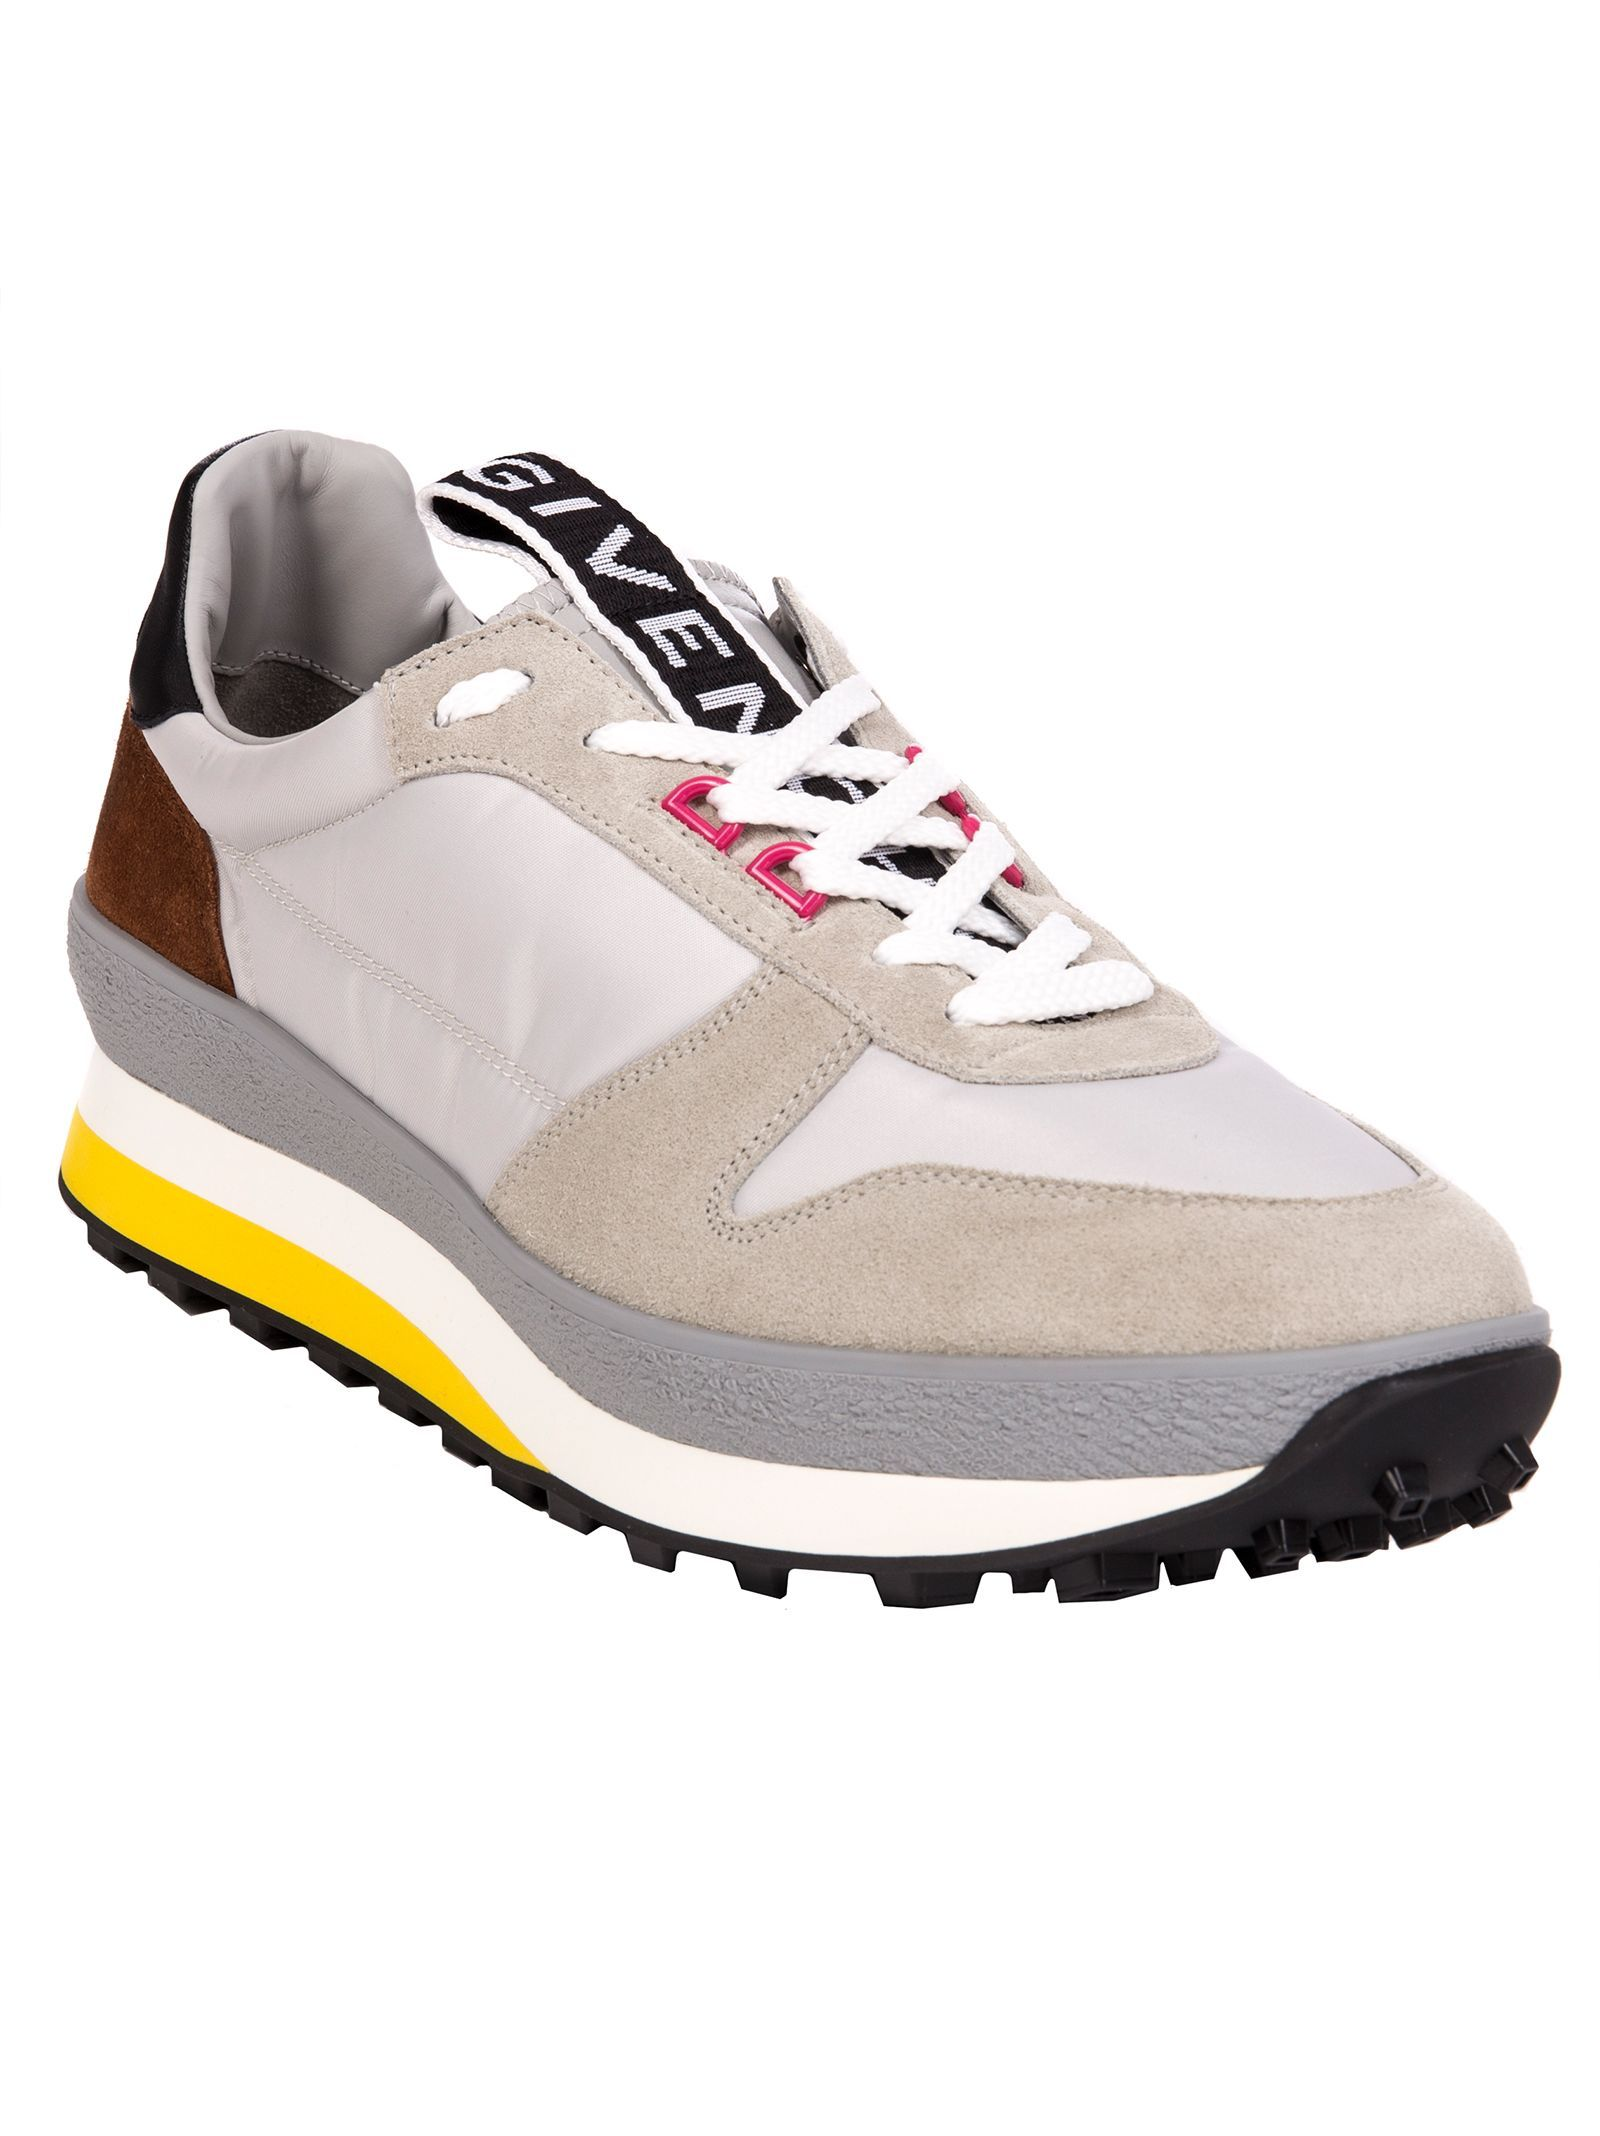 ff02af85c GIVENCHY T3 RUNNER SNEAKERS IN GREY AND YELLOW.  givenchy  shoes ...